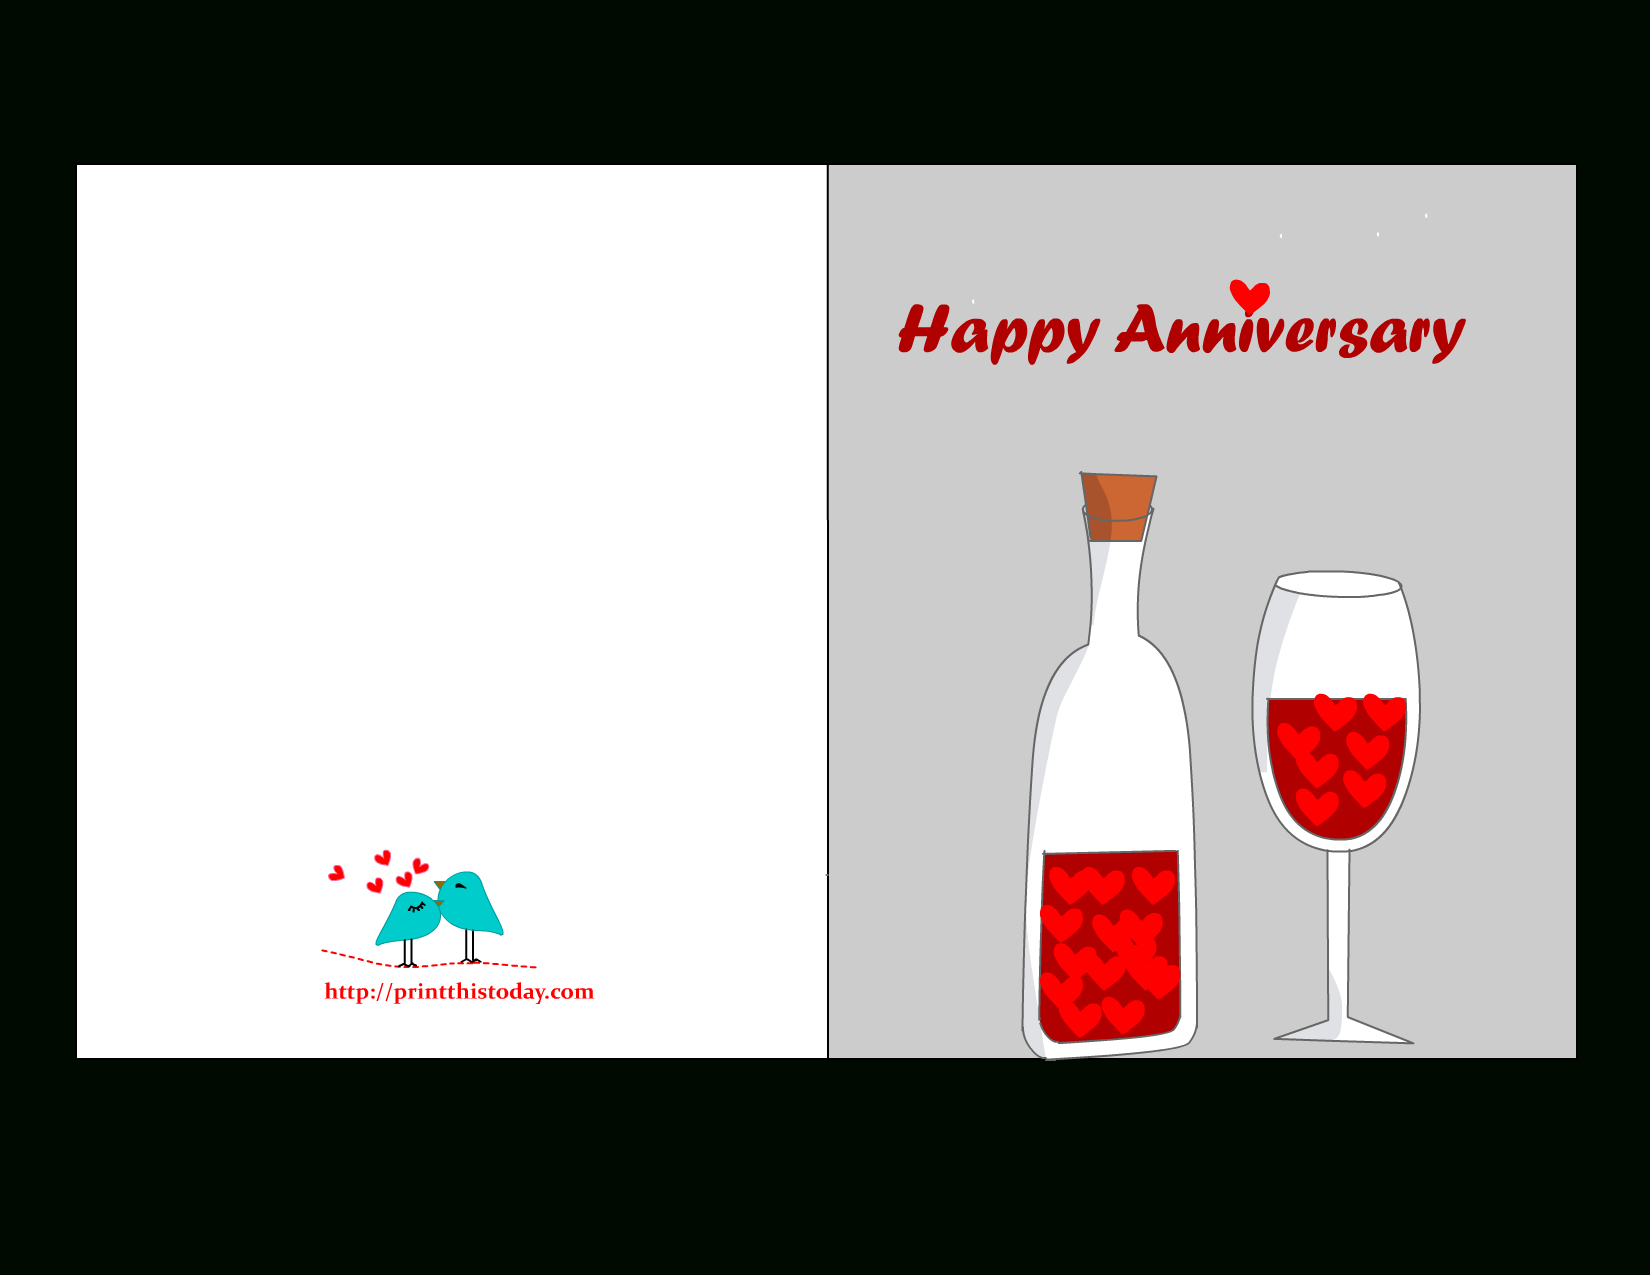 Free Printable Anniversary Cards - Free Printable Anniversary Cards For Couple